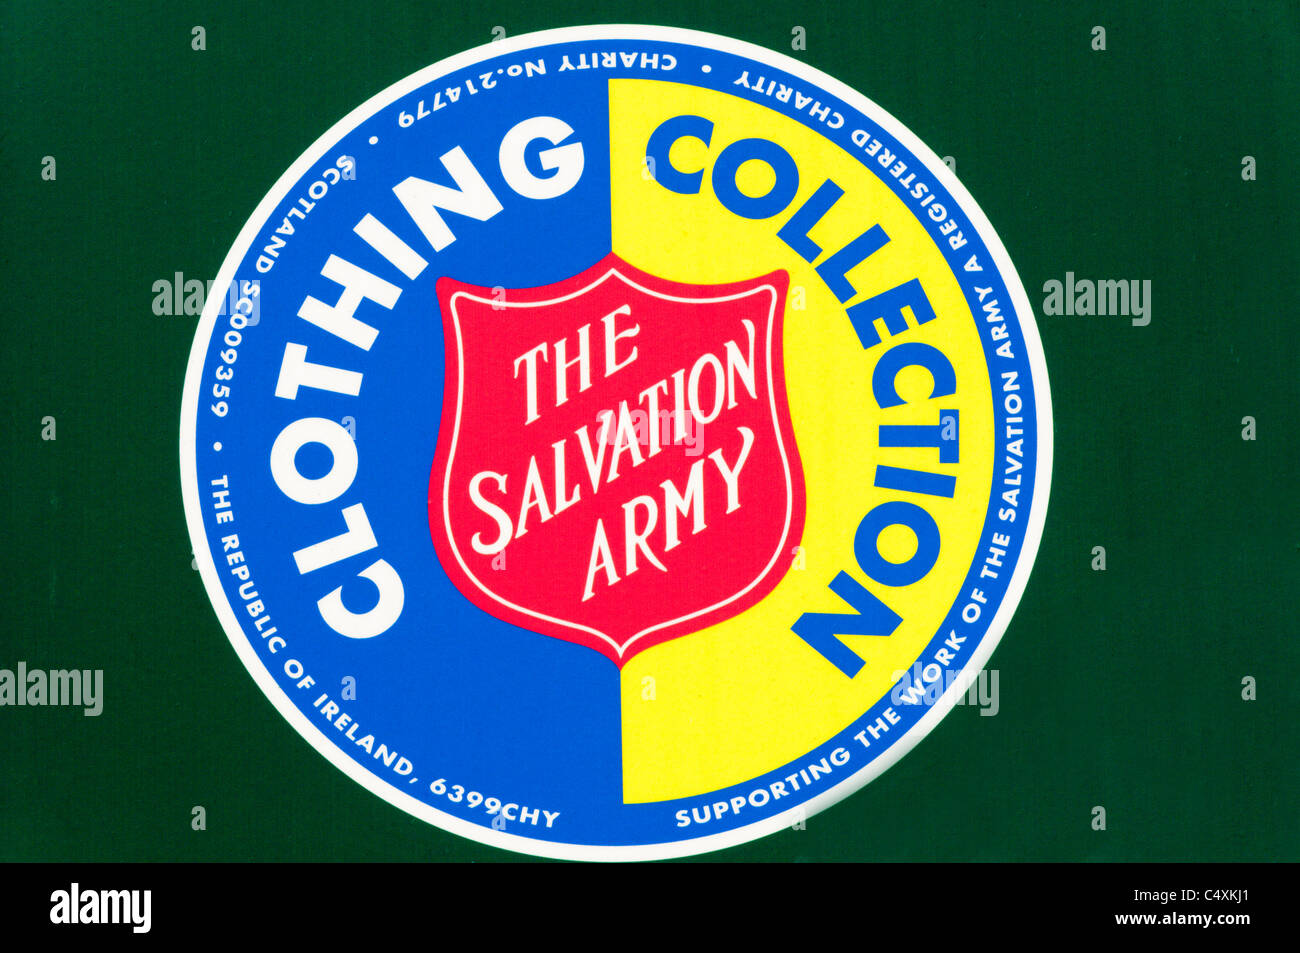 Salvation Army charity collection point for unwanted clothing. - Stock Image